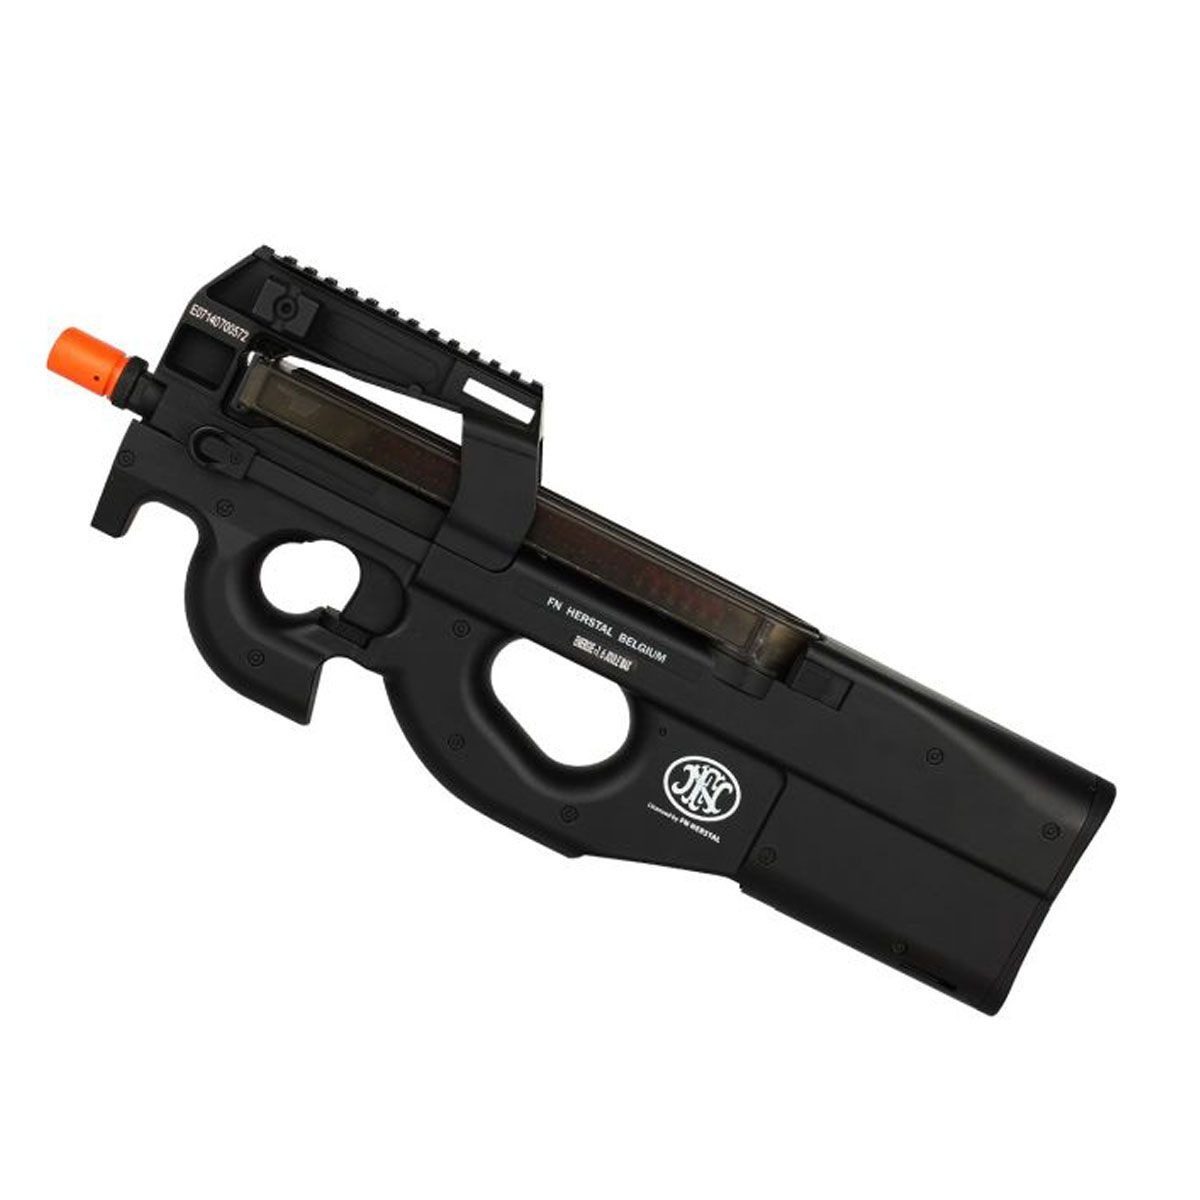 Rifle de Airsoft FN P90Elet Cybergun cal. 6MM